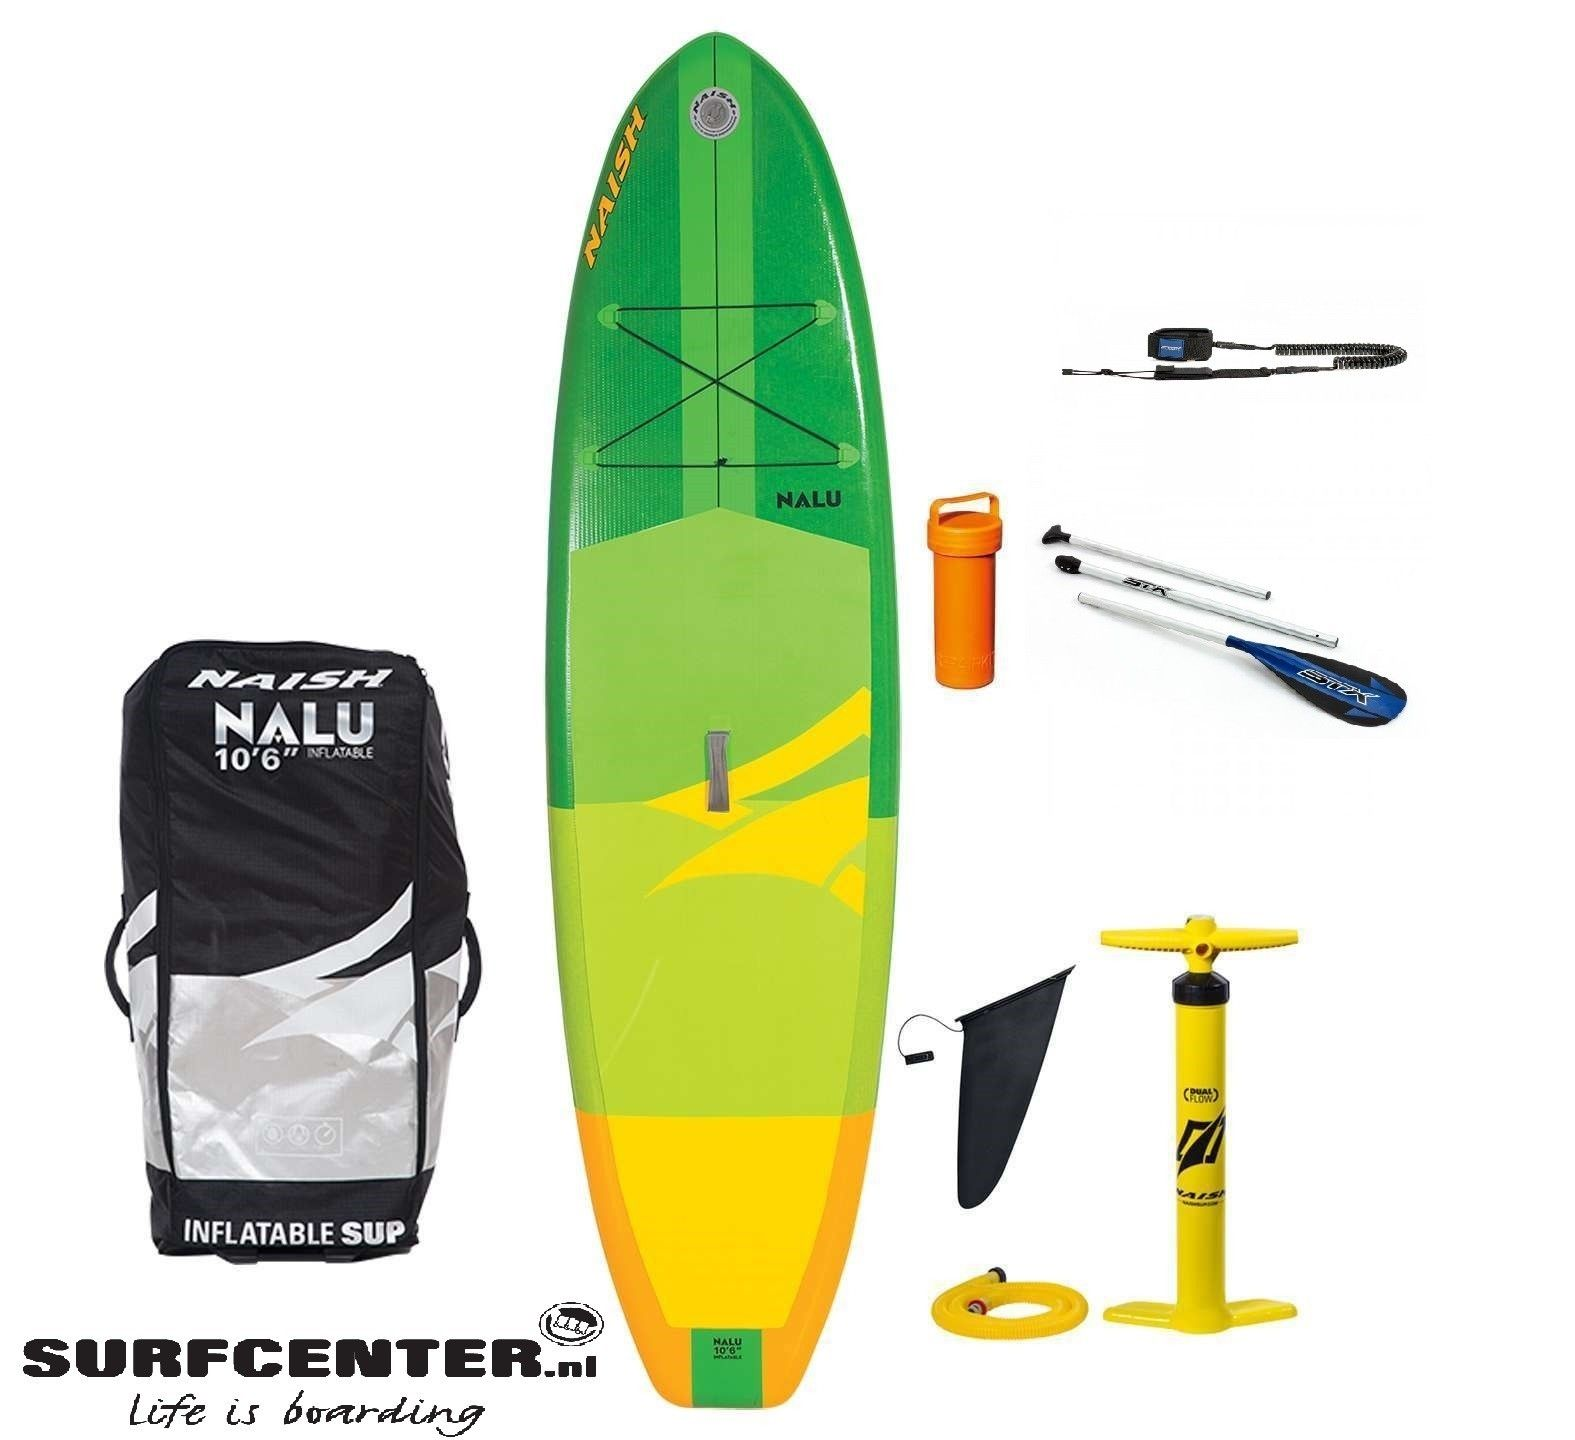 "Naish 19 SUP Air Nalu Inflatable 10'6""X32"